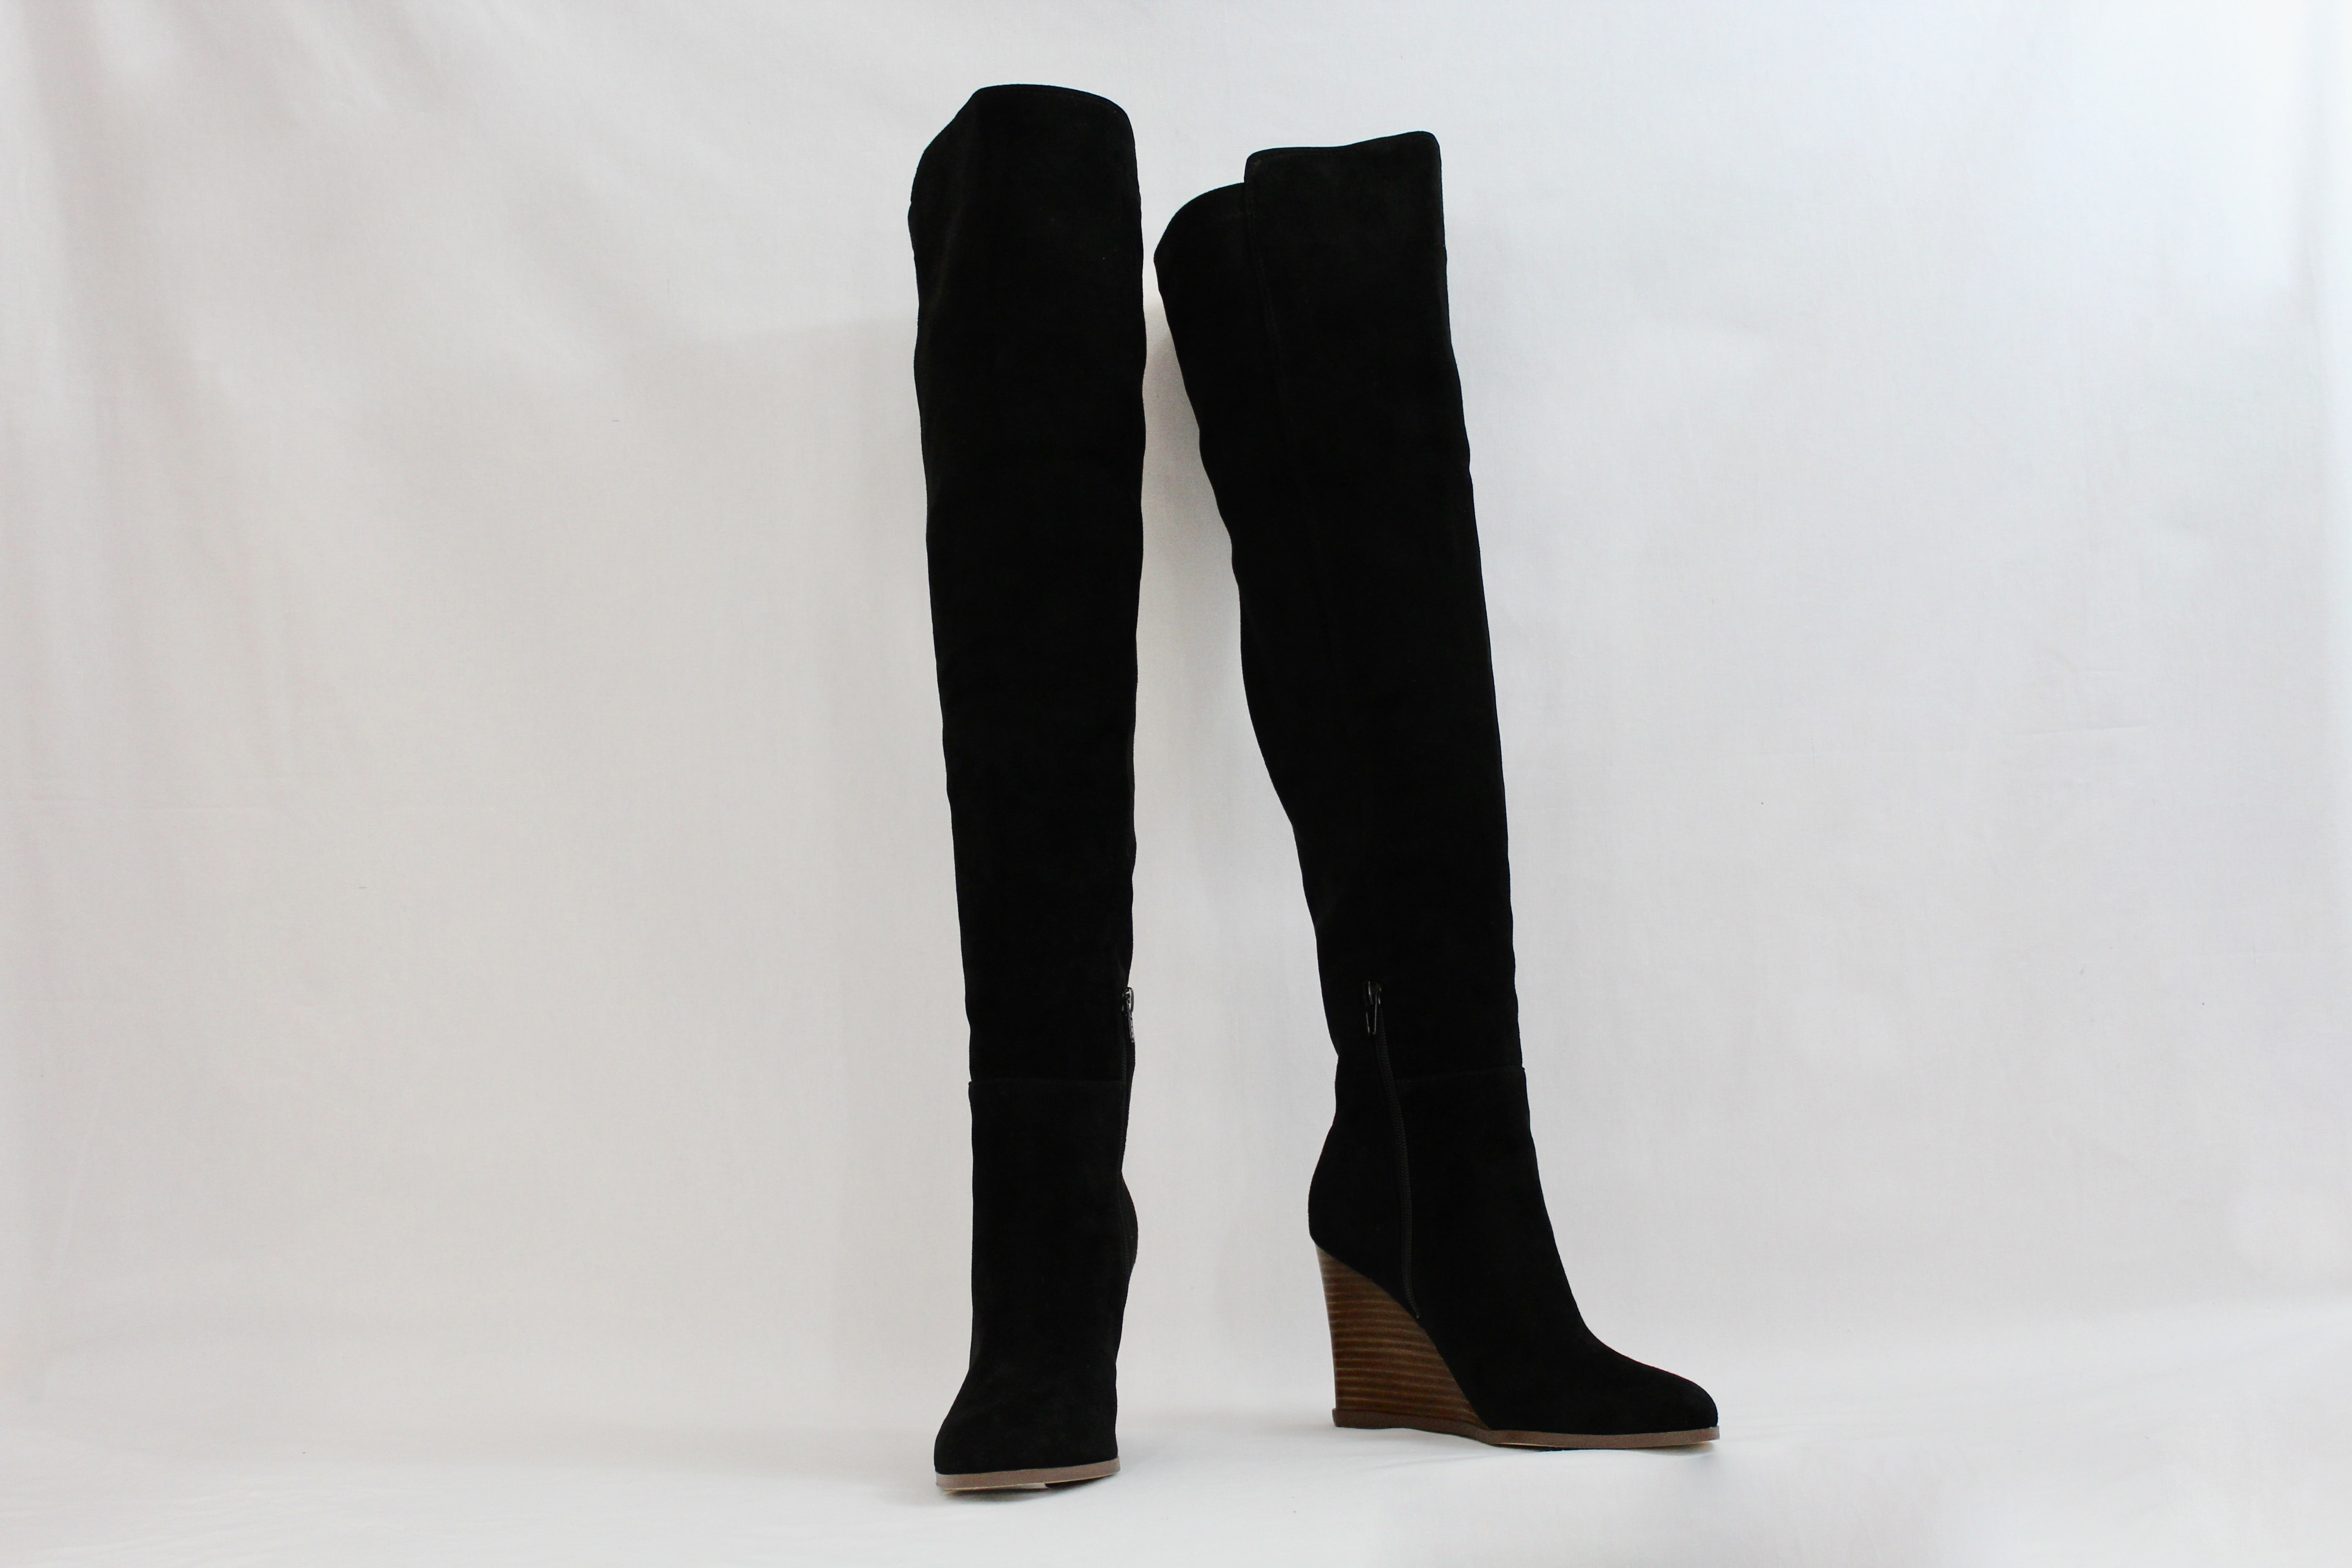 30ed6fc85b7 Vince Camuto Granta Black suede over the knee boots – Changes Luxury  Consignment